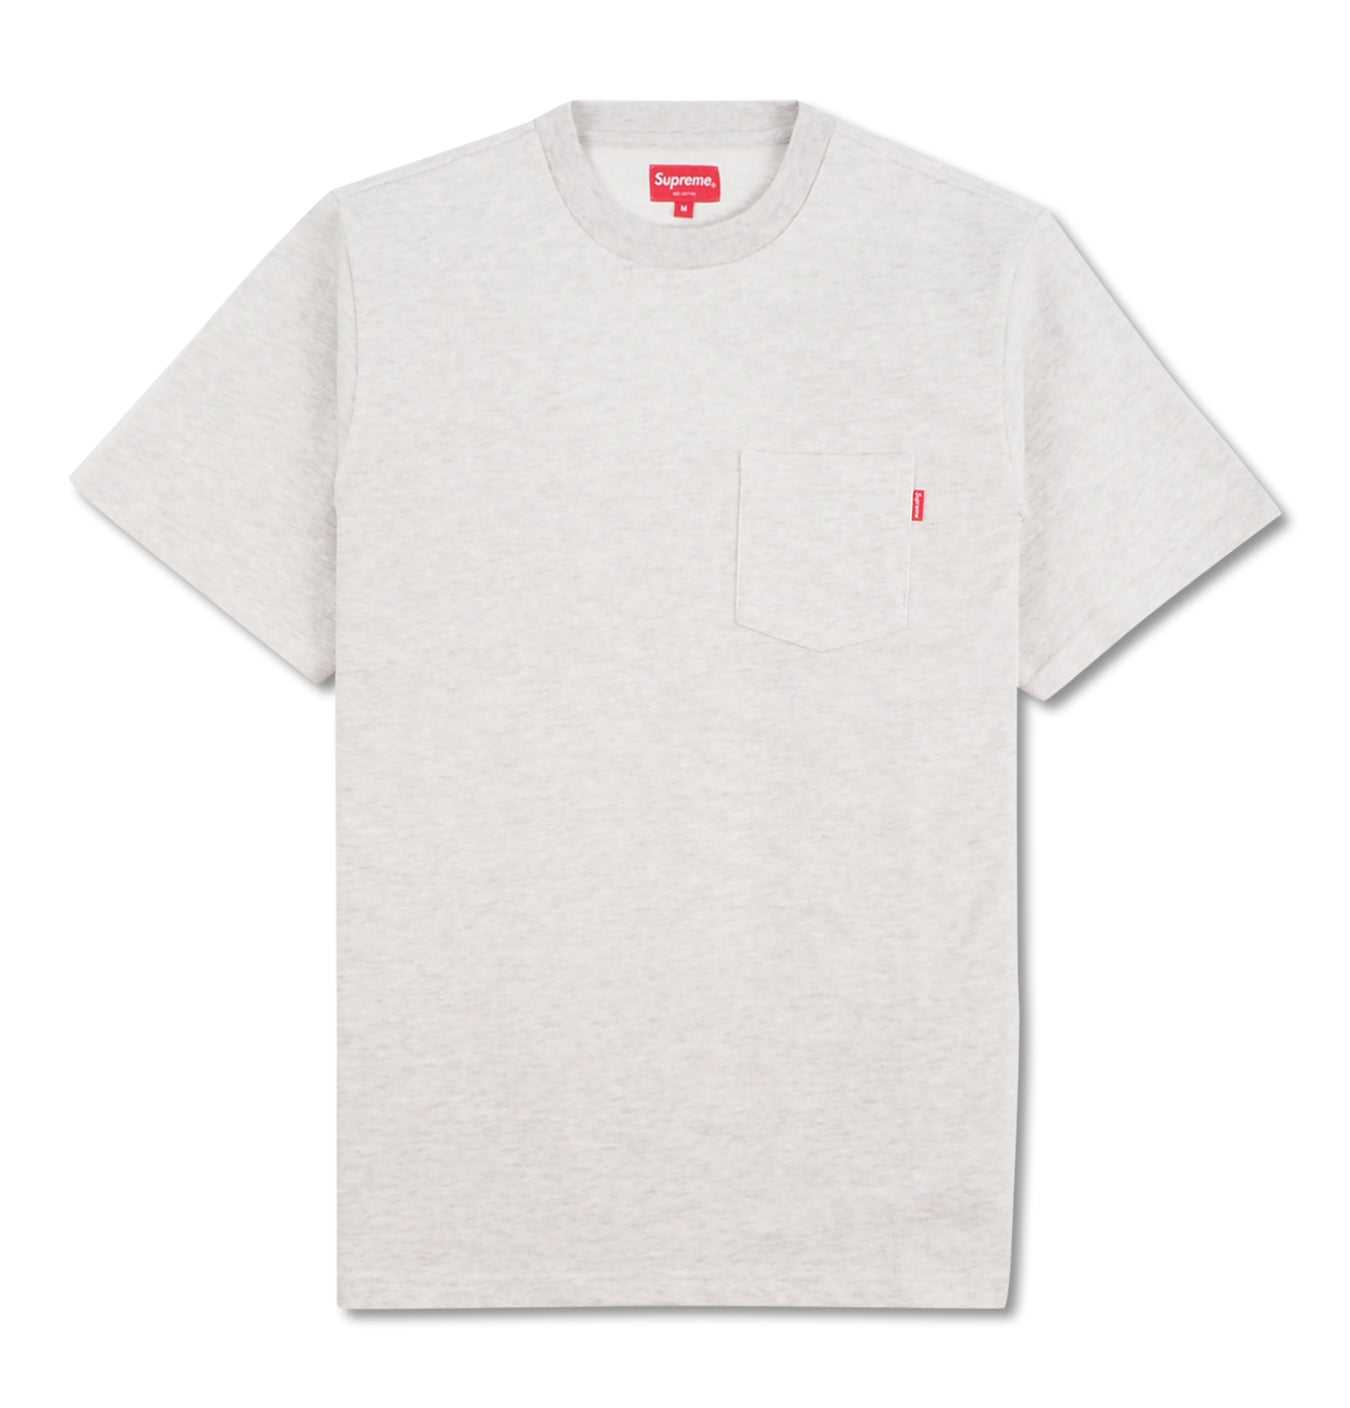 Image of   Supreme SS Pocket Tee